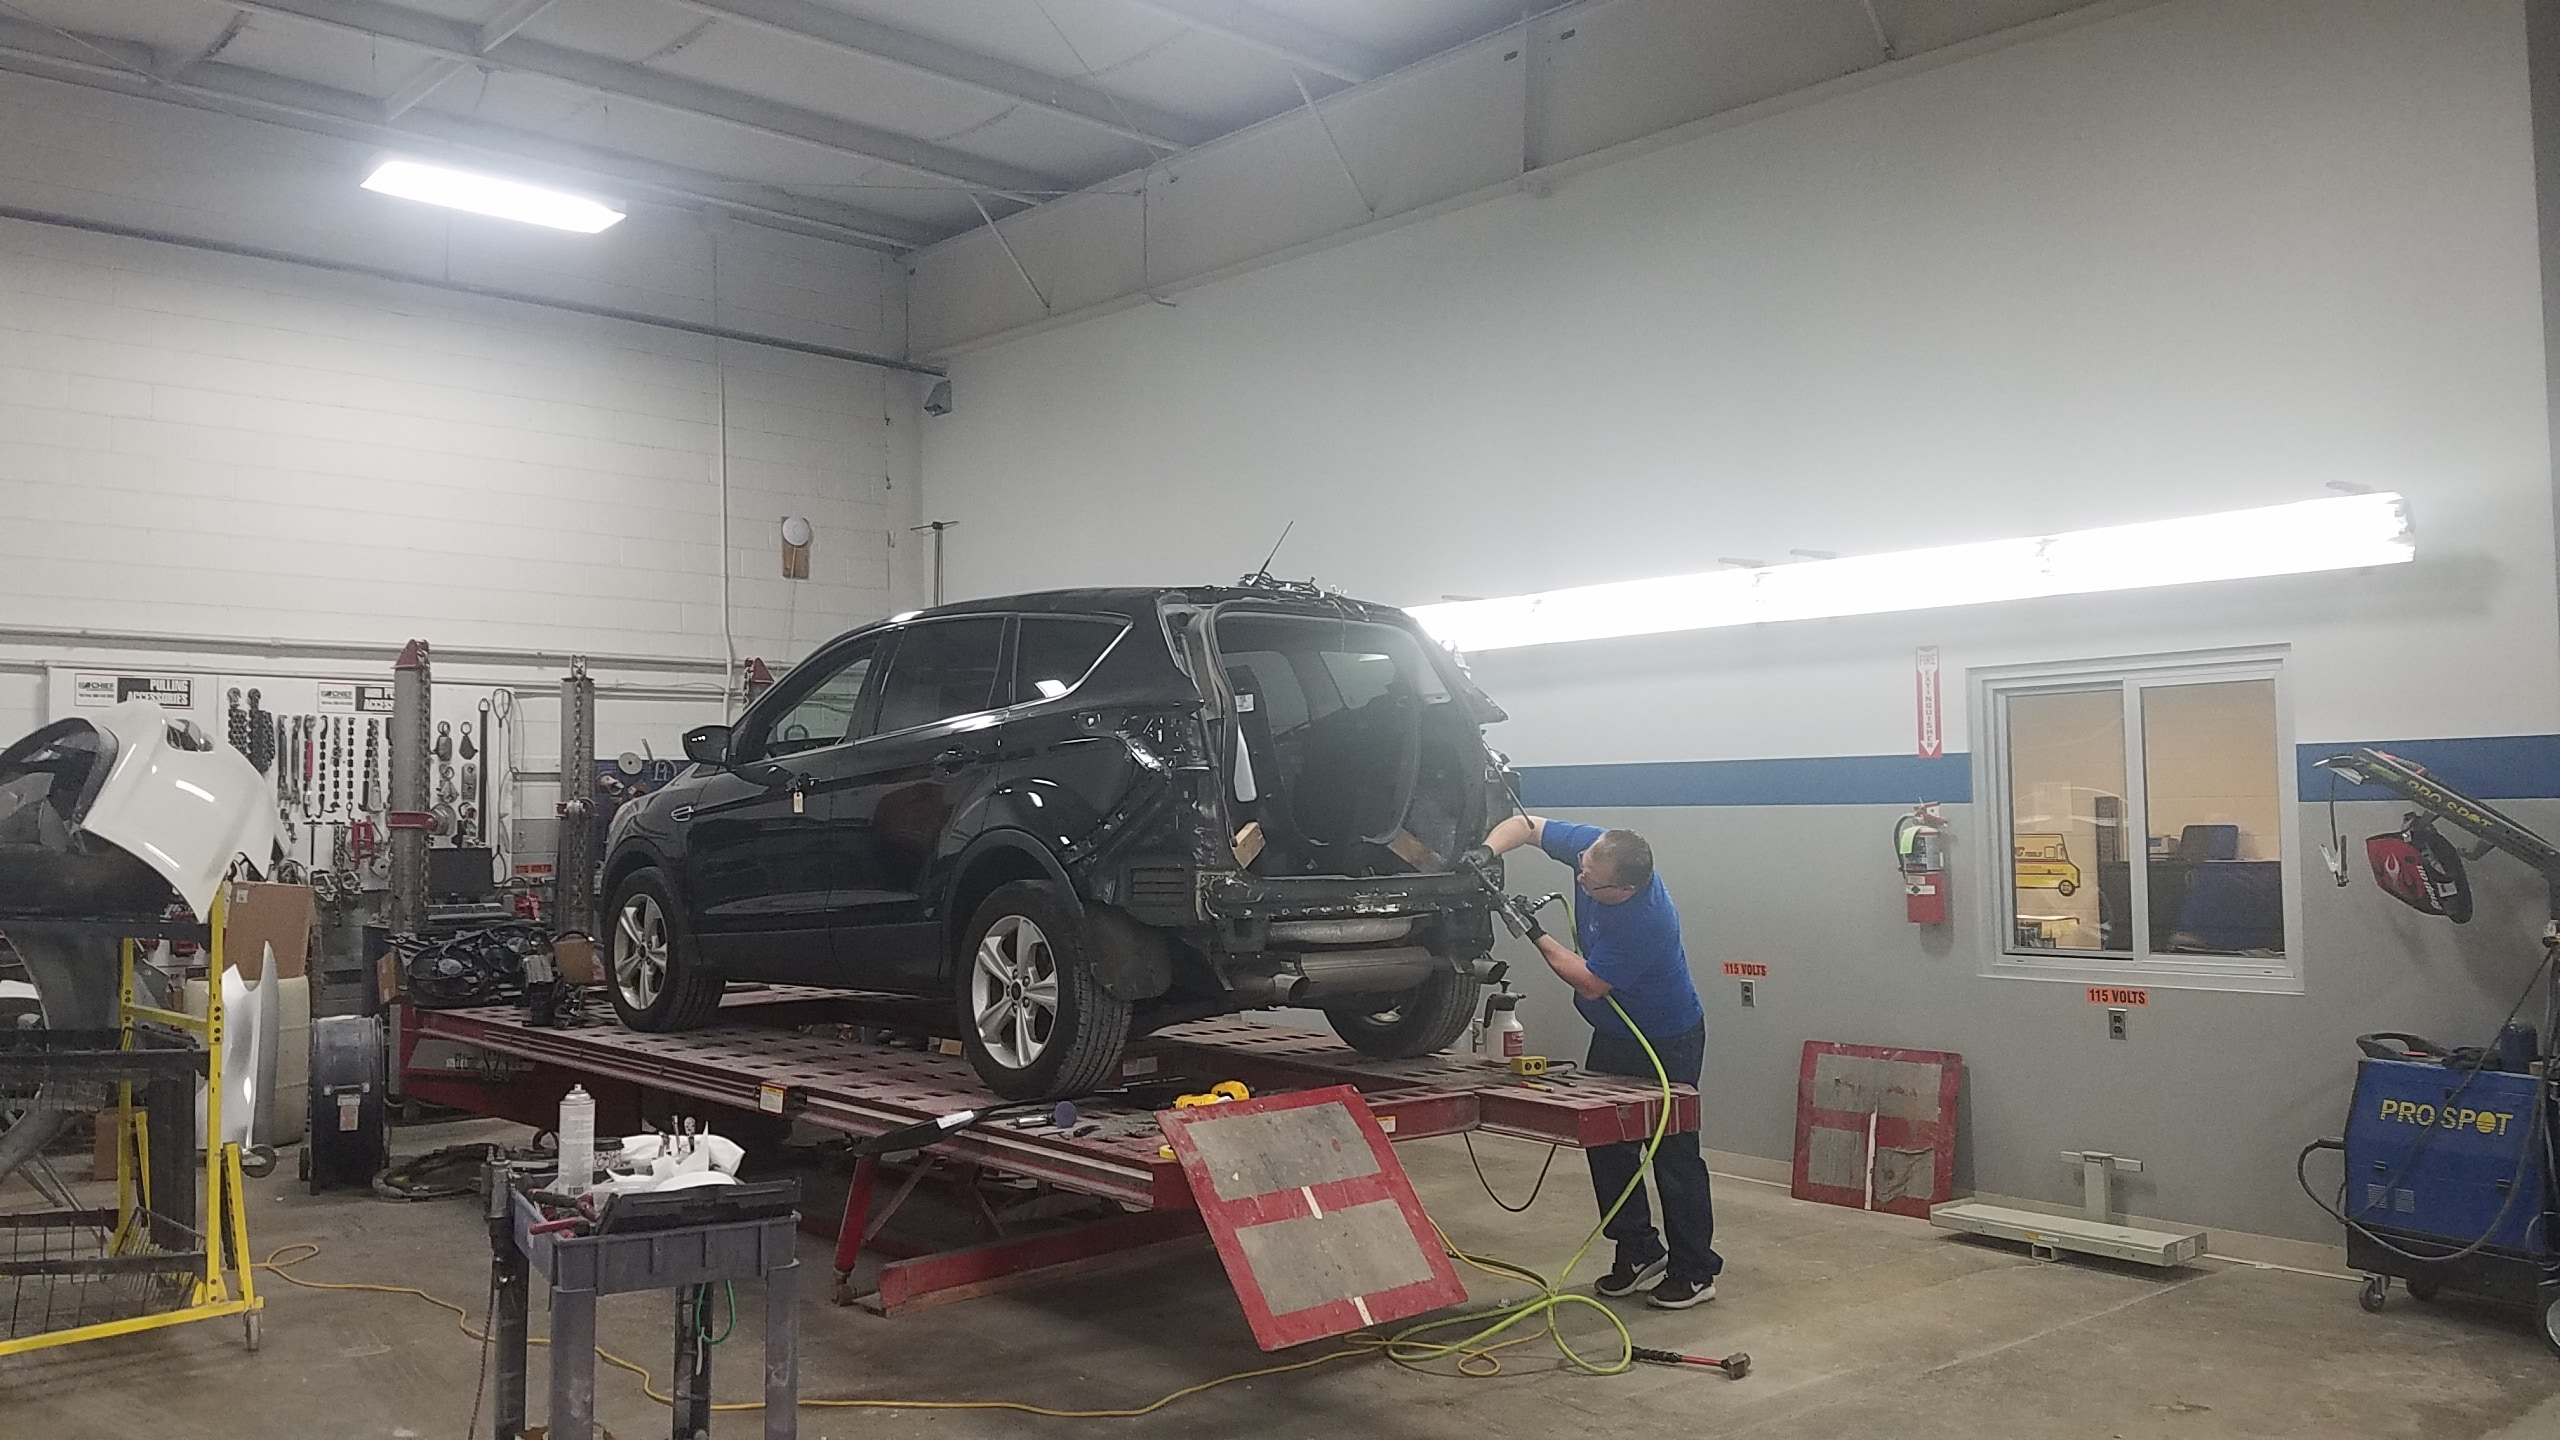 SUV receiving body work in the Stillwell Ford Body Shop in Hillsdale, MI